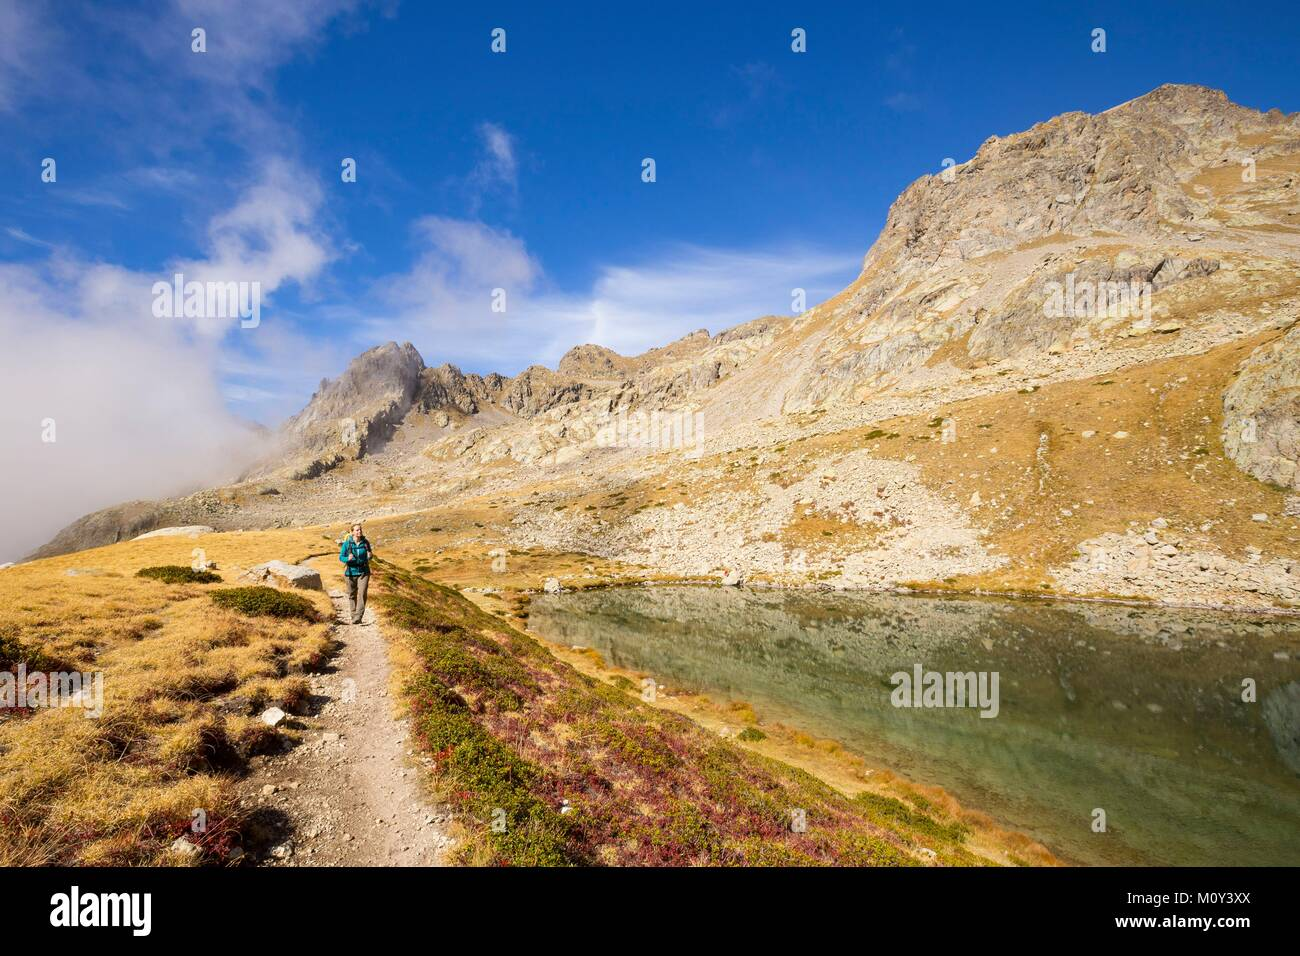 France,Alpes-Maritimes,Mercantour National Park,Gordolasque Valley,hiker walking by lake Autier (2275m) Stock Photo